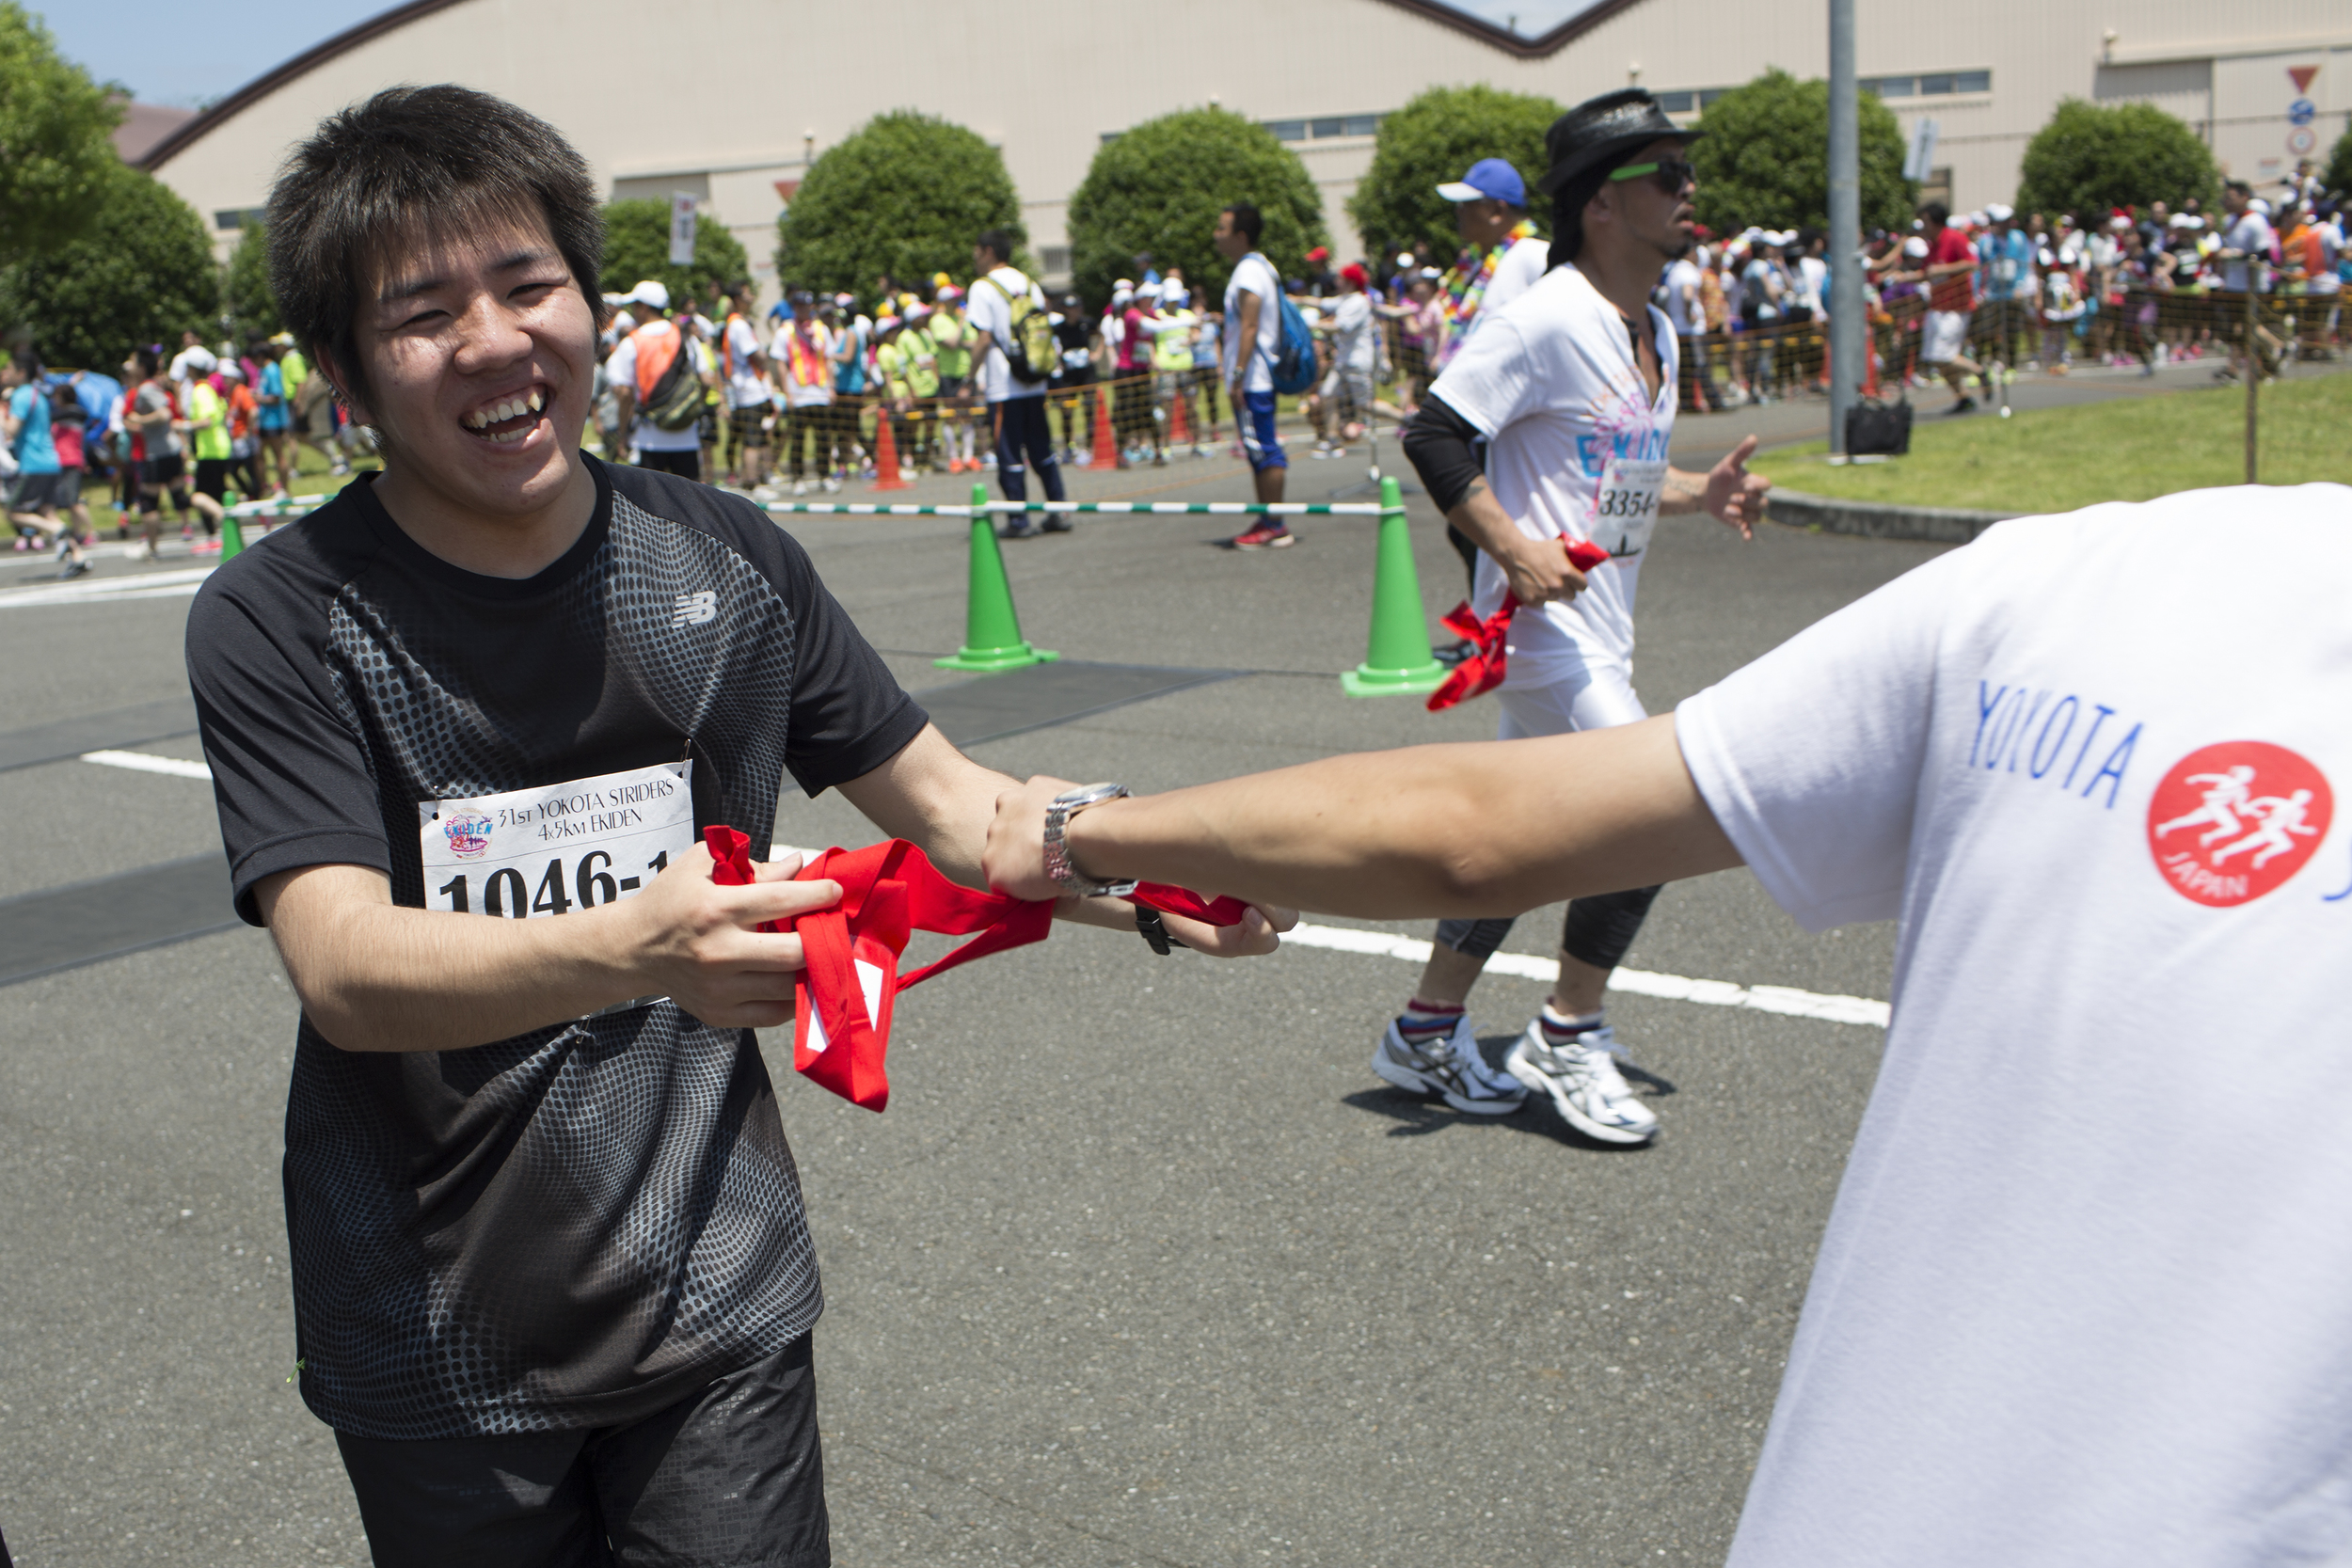 An Ekiden runner hands off a tasuki, a cloth sash, to the next runner during the 31st Annual Ekiden race at Yokota Air Base, Japan. More than 5,800 runners participated in the event sponsored by the Yokota Striders Running Club. (U.S. Air Force photo by Osakabe Yasuo/Released)